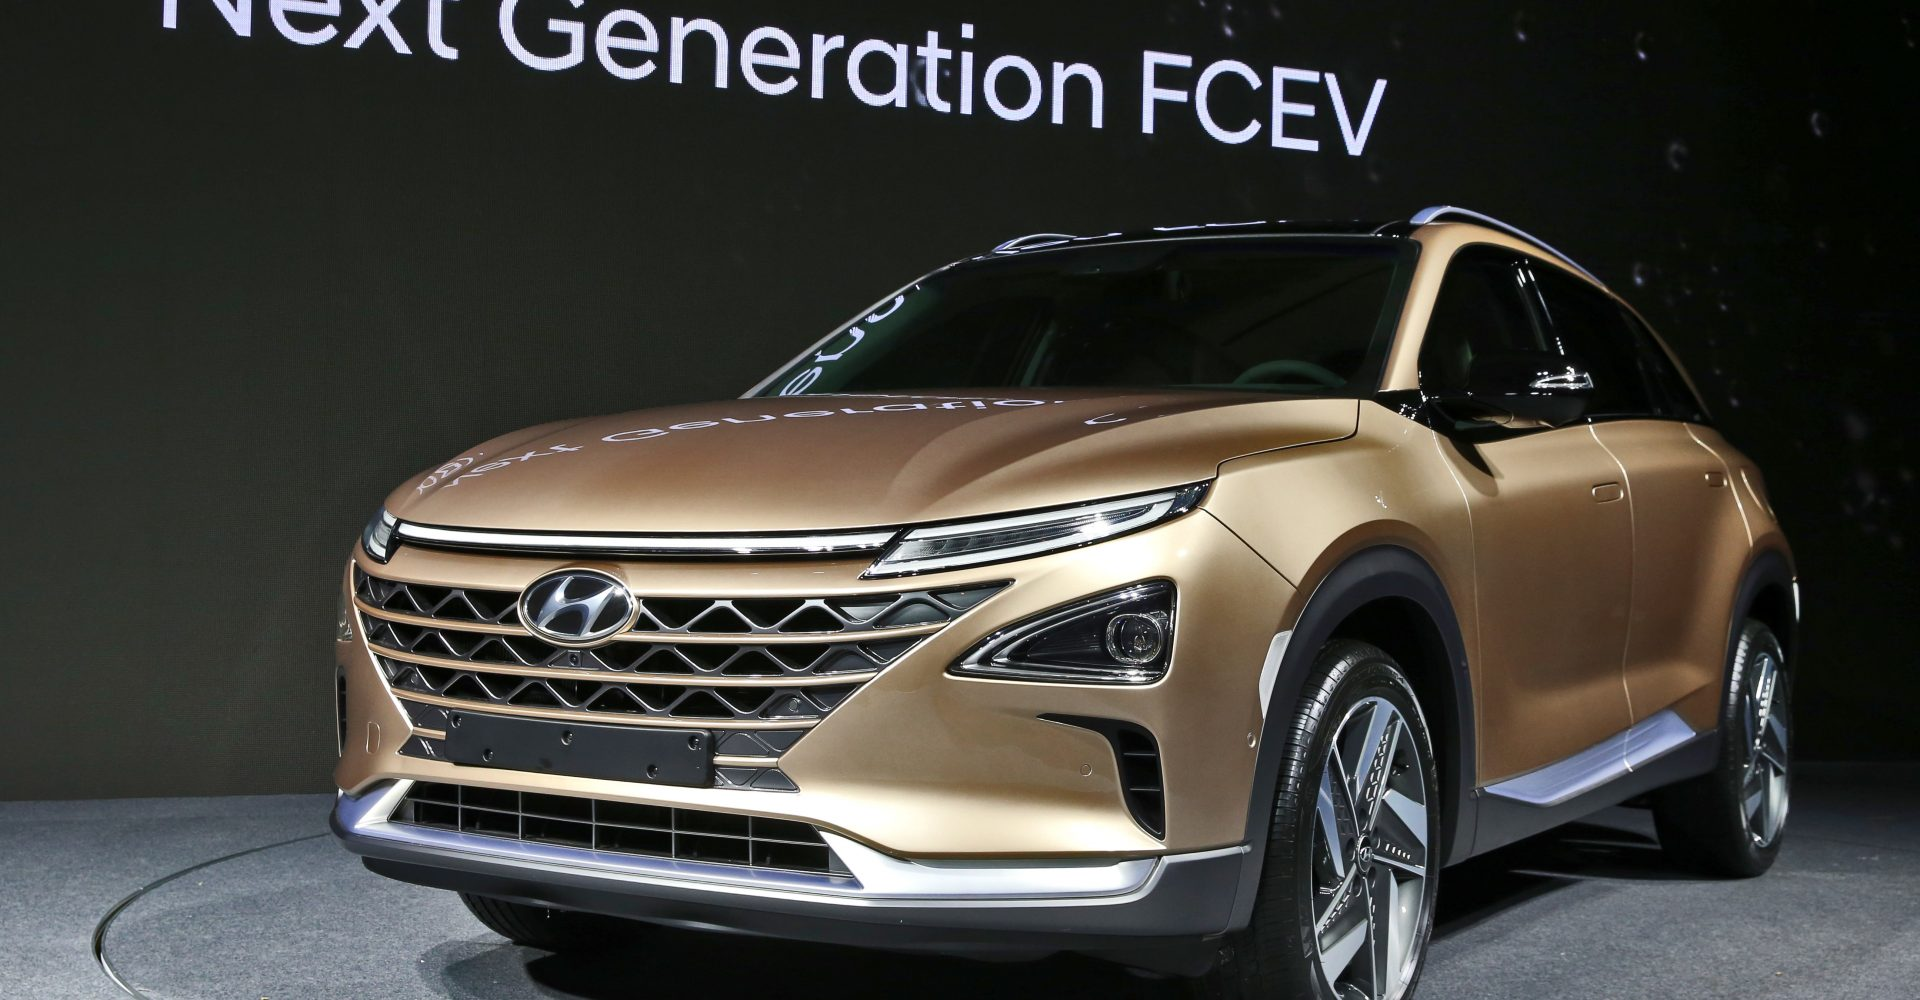 Next generation Hyundai hydrogen fuel-cell car is here